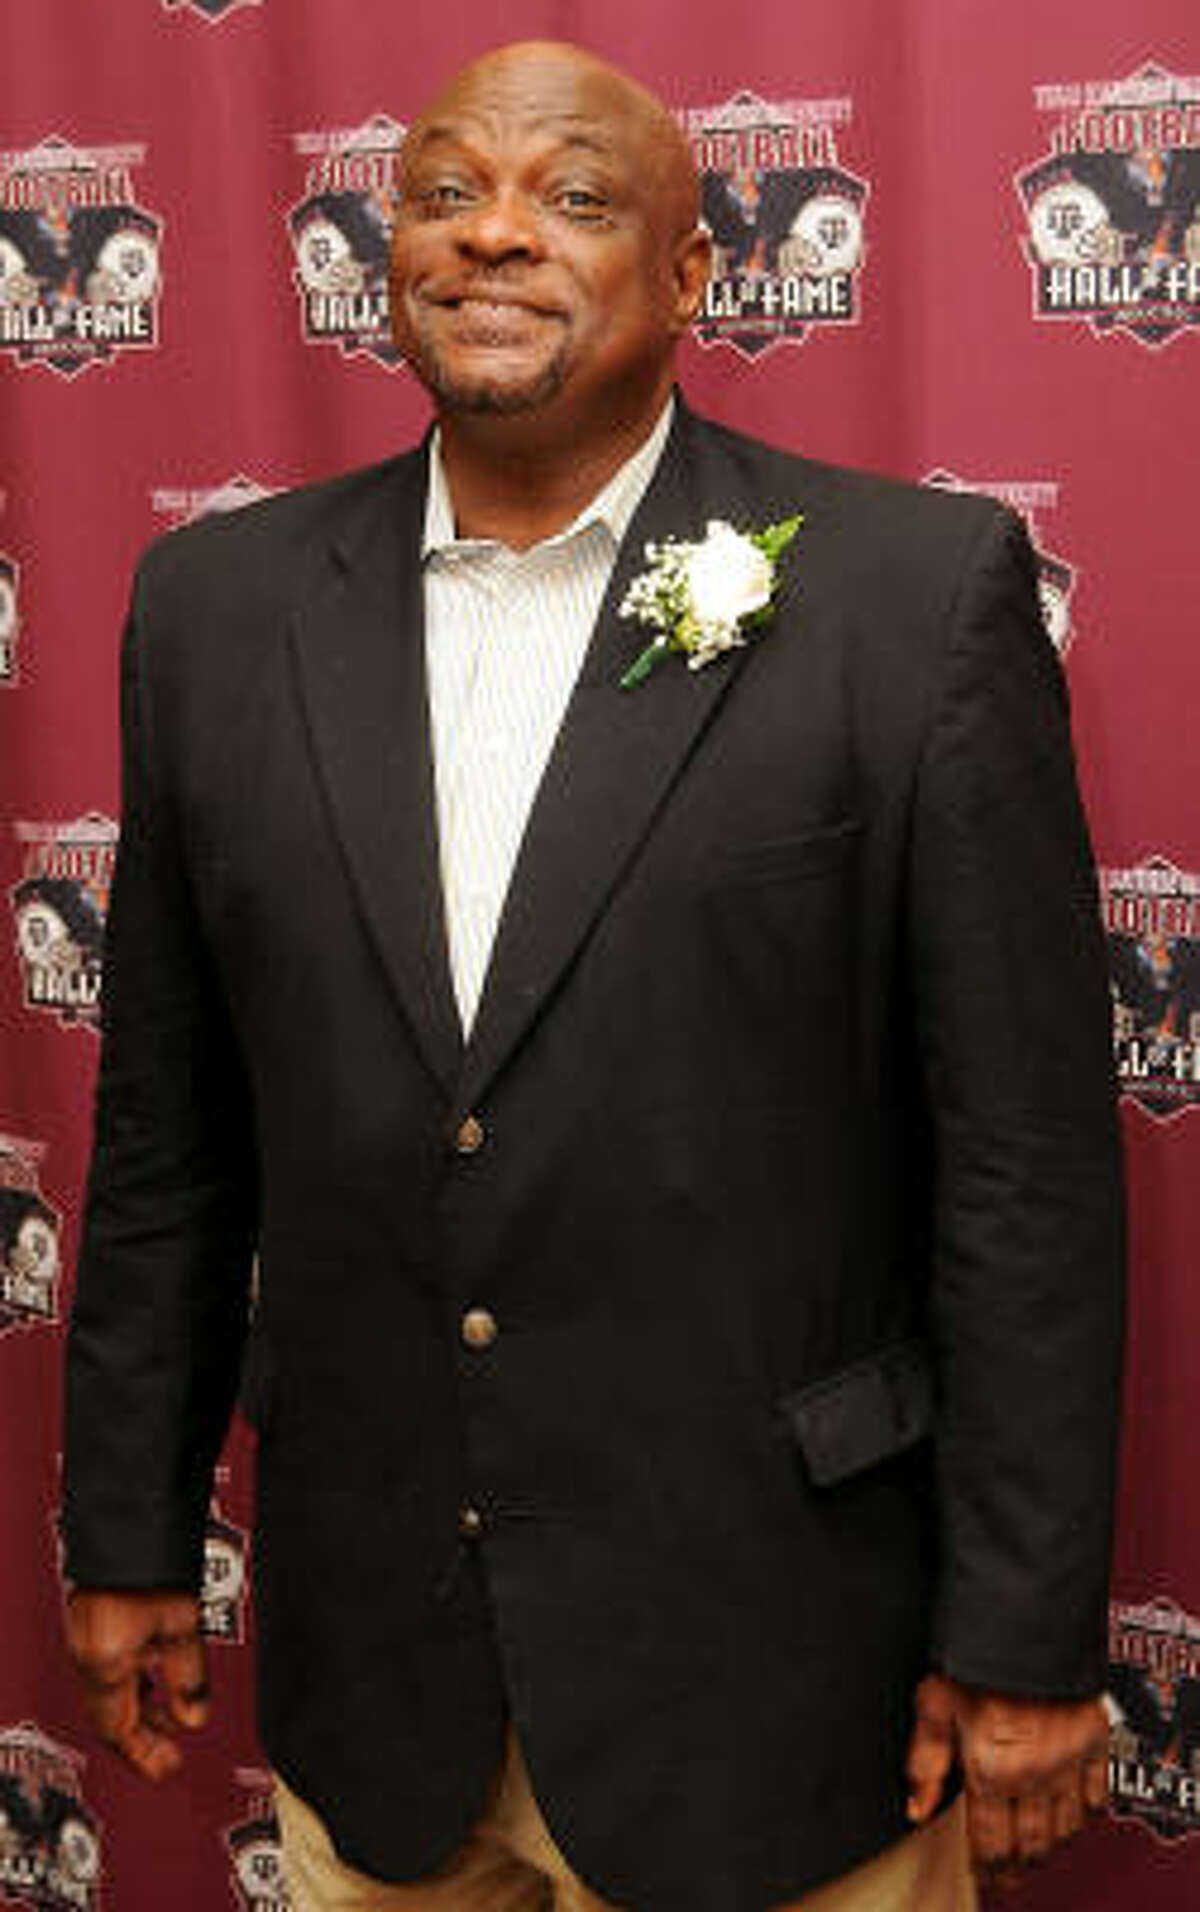 Inductee Kenny Burrough starred at TSU in the late 1960s and was later a two-time Pro Bowler with the Oilers.